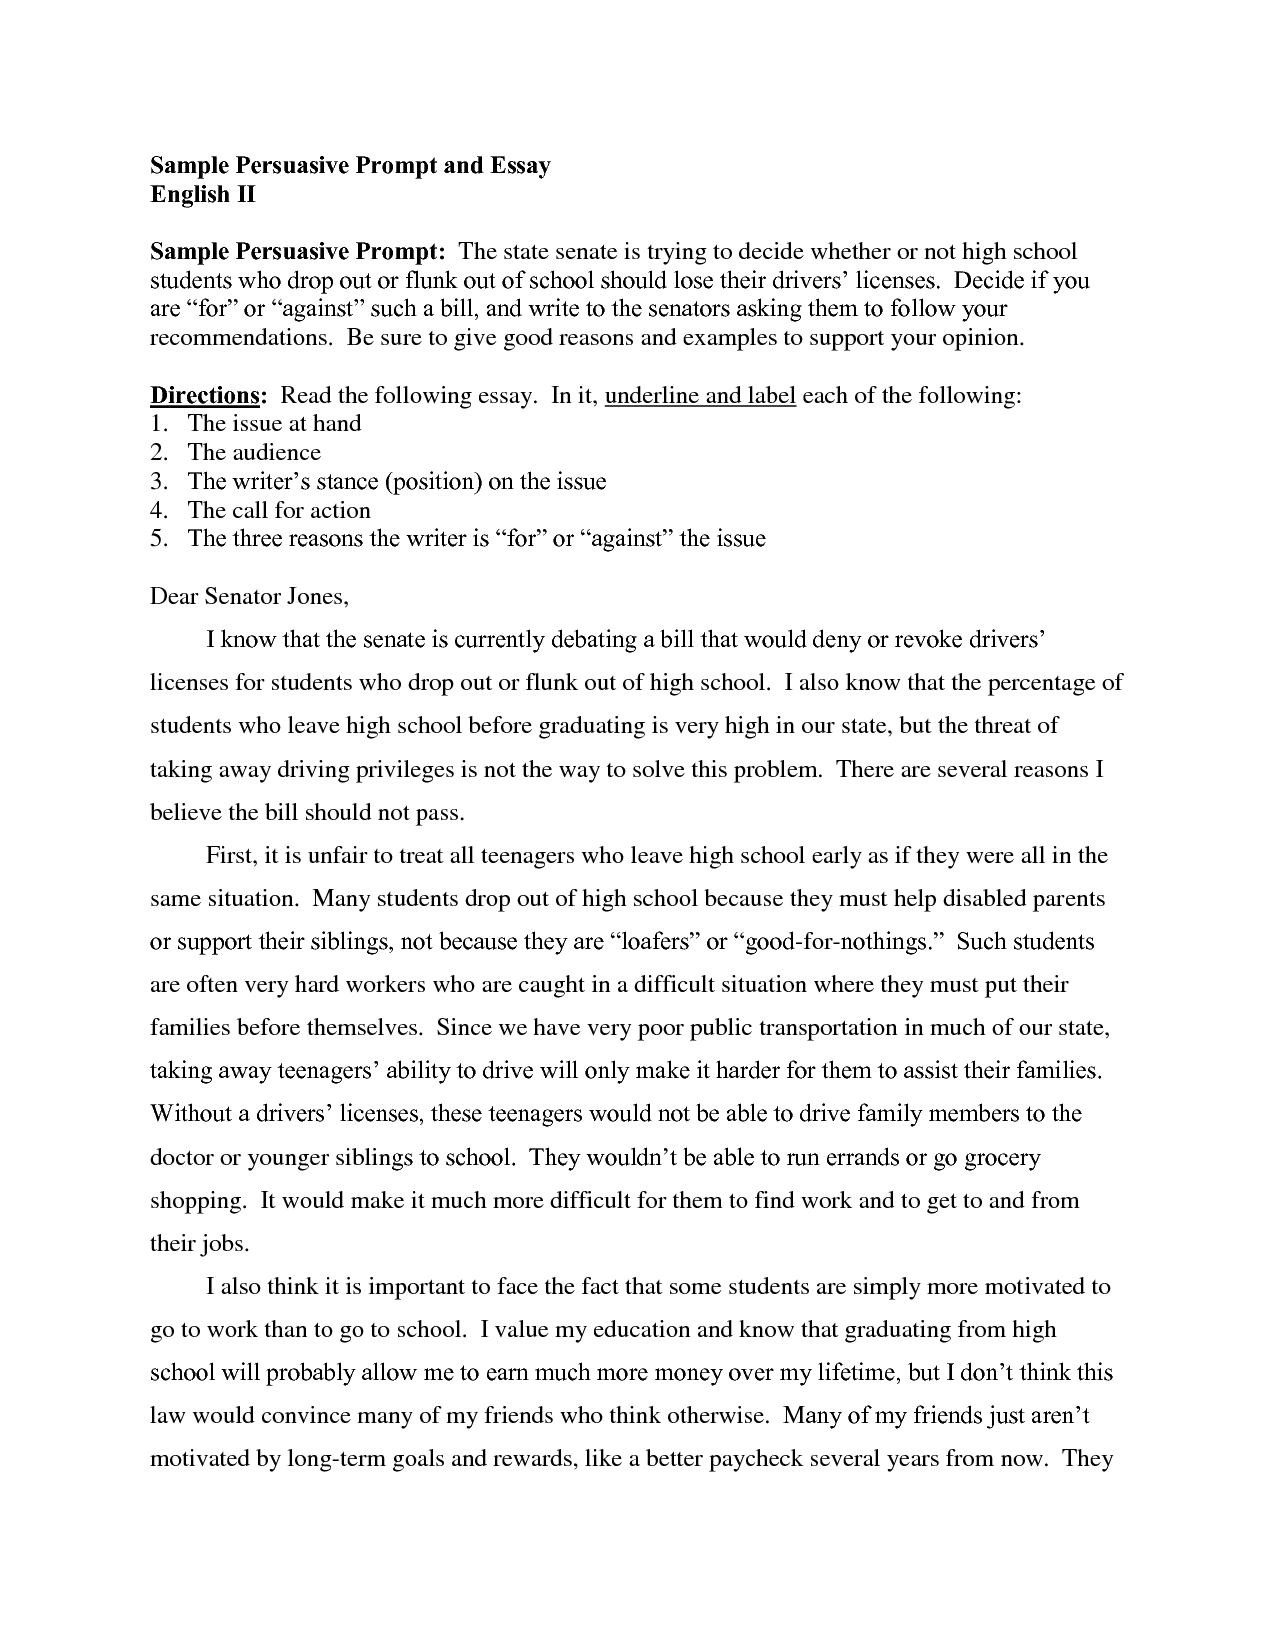 Examples Of English Essays  Thesis Statement Descriptive Essay also Essay About Healthy Food  Research Paper Interesting Topics For High School  Private High School Admission Essay Examples